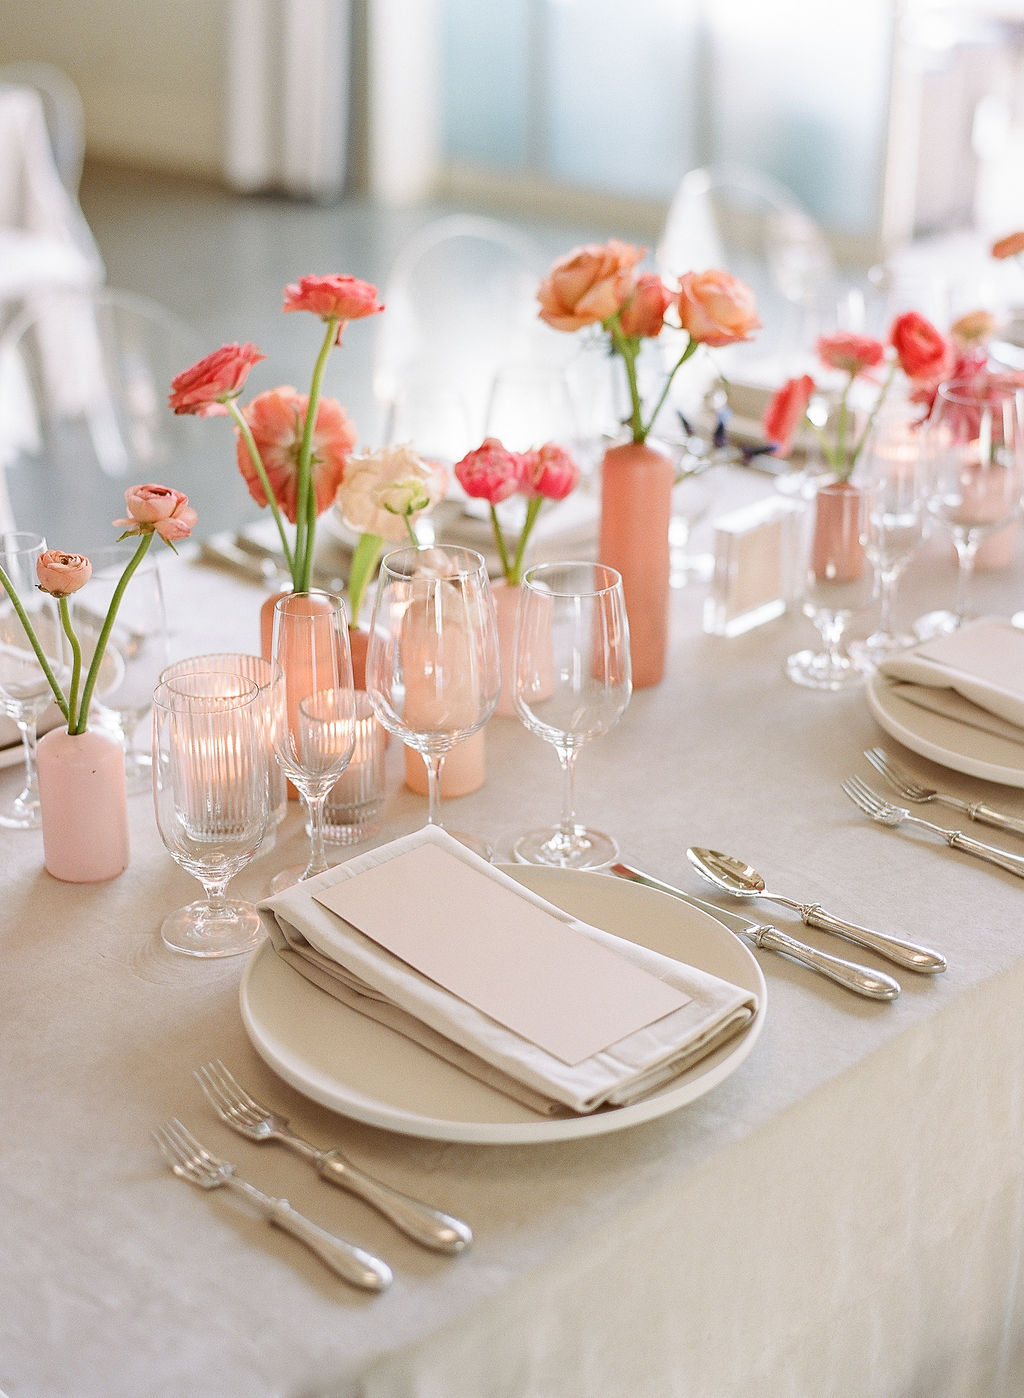 neutral and pink elegant wedding place settings